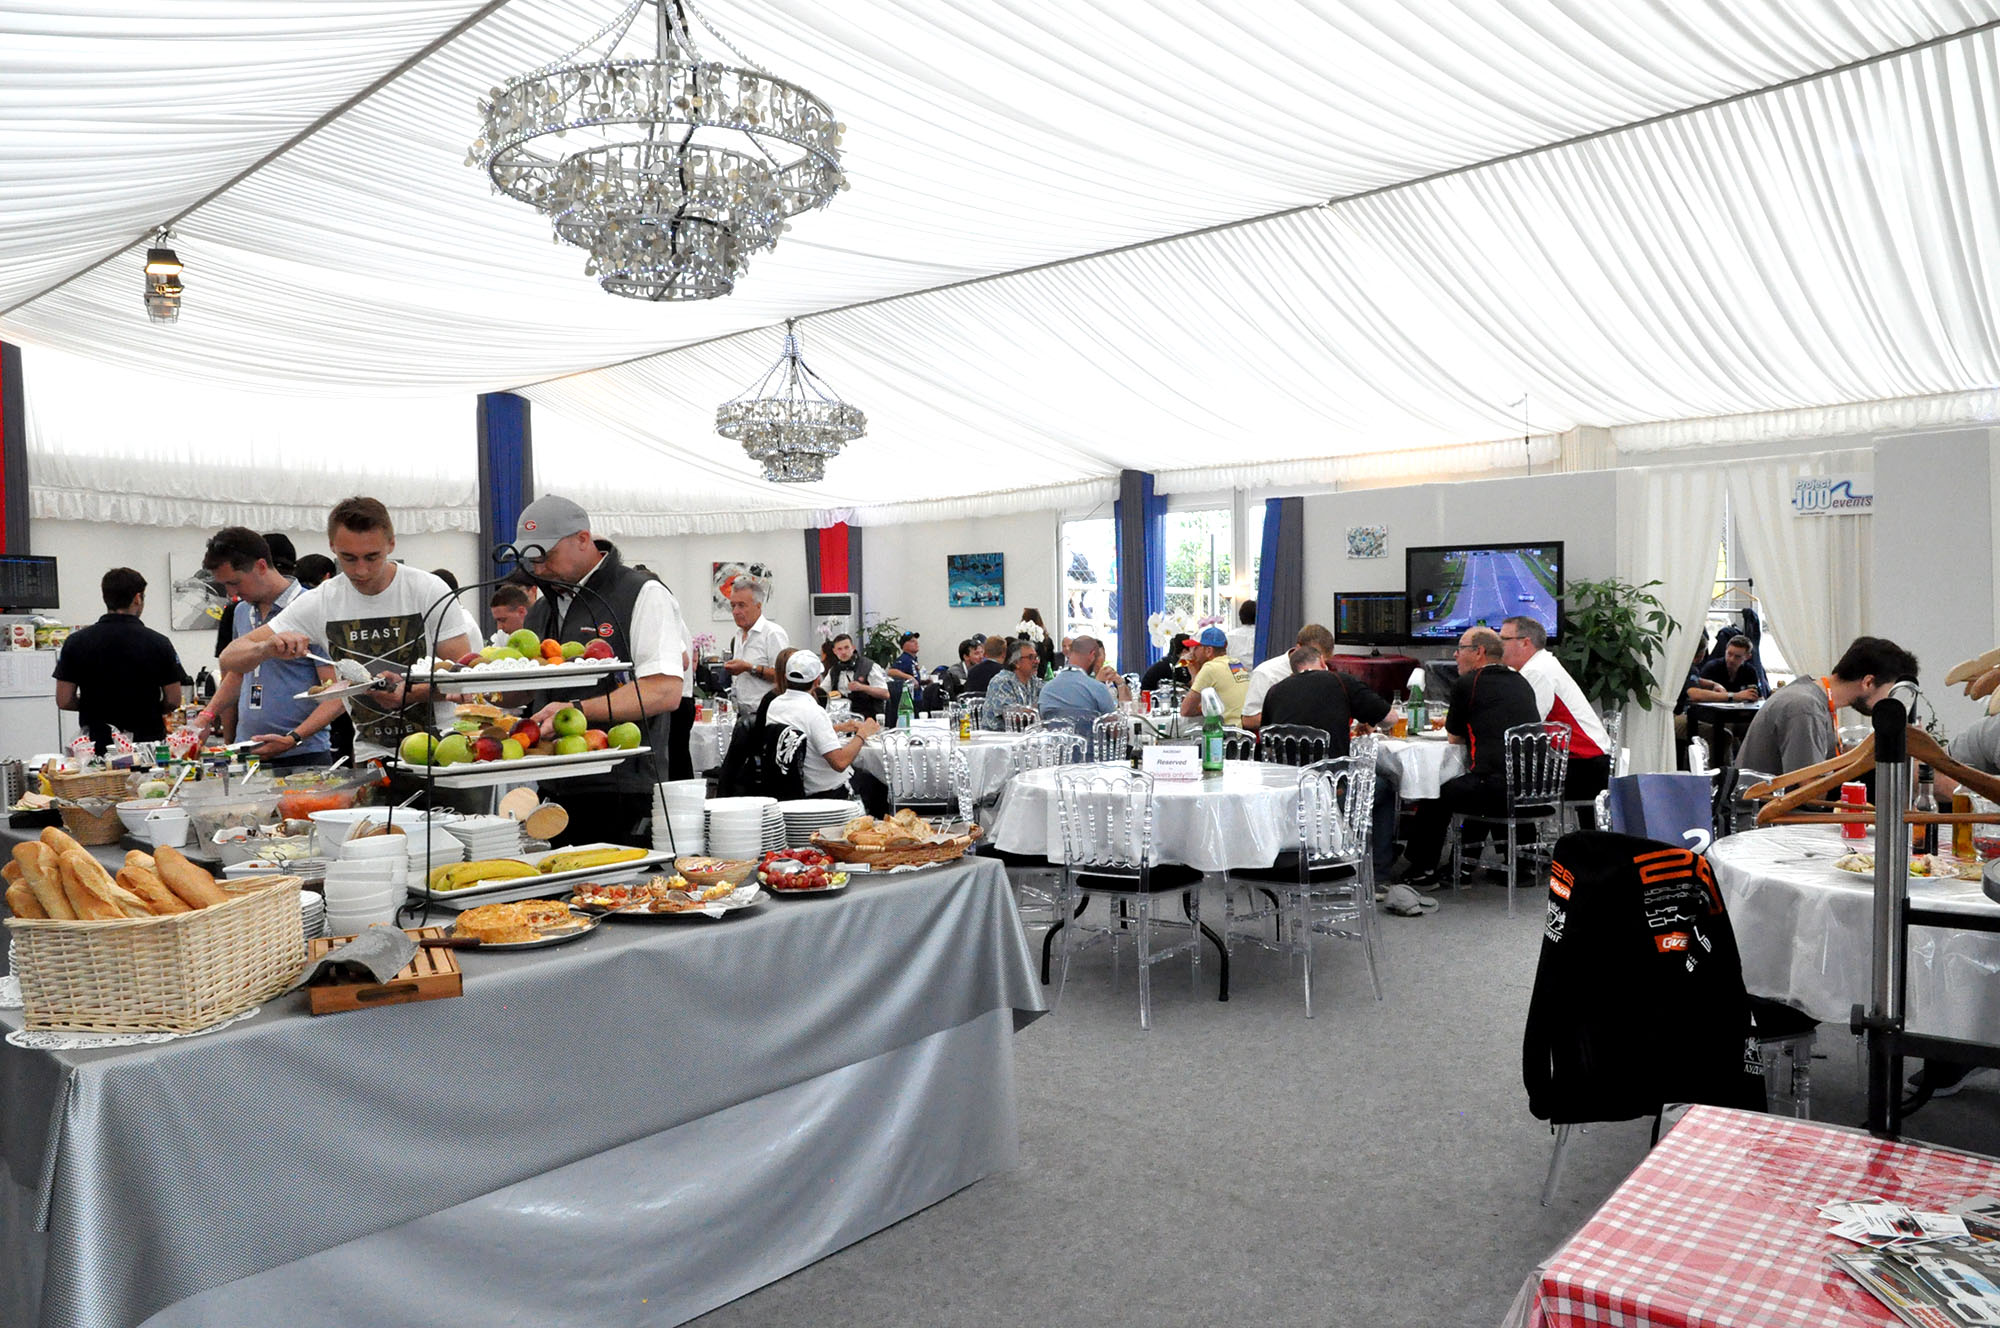 Cuisine Plus Le Mans Le Mans 24 Hours Project 100 Events